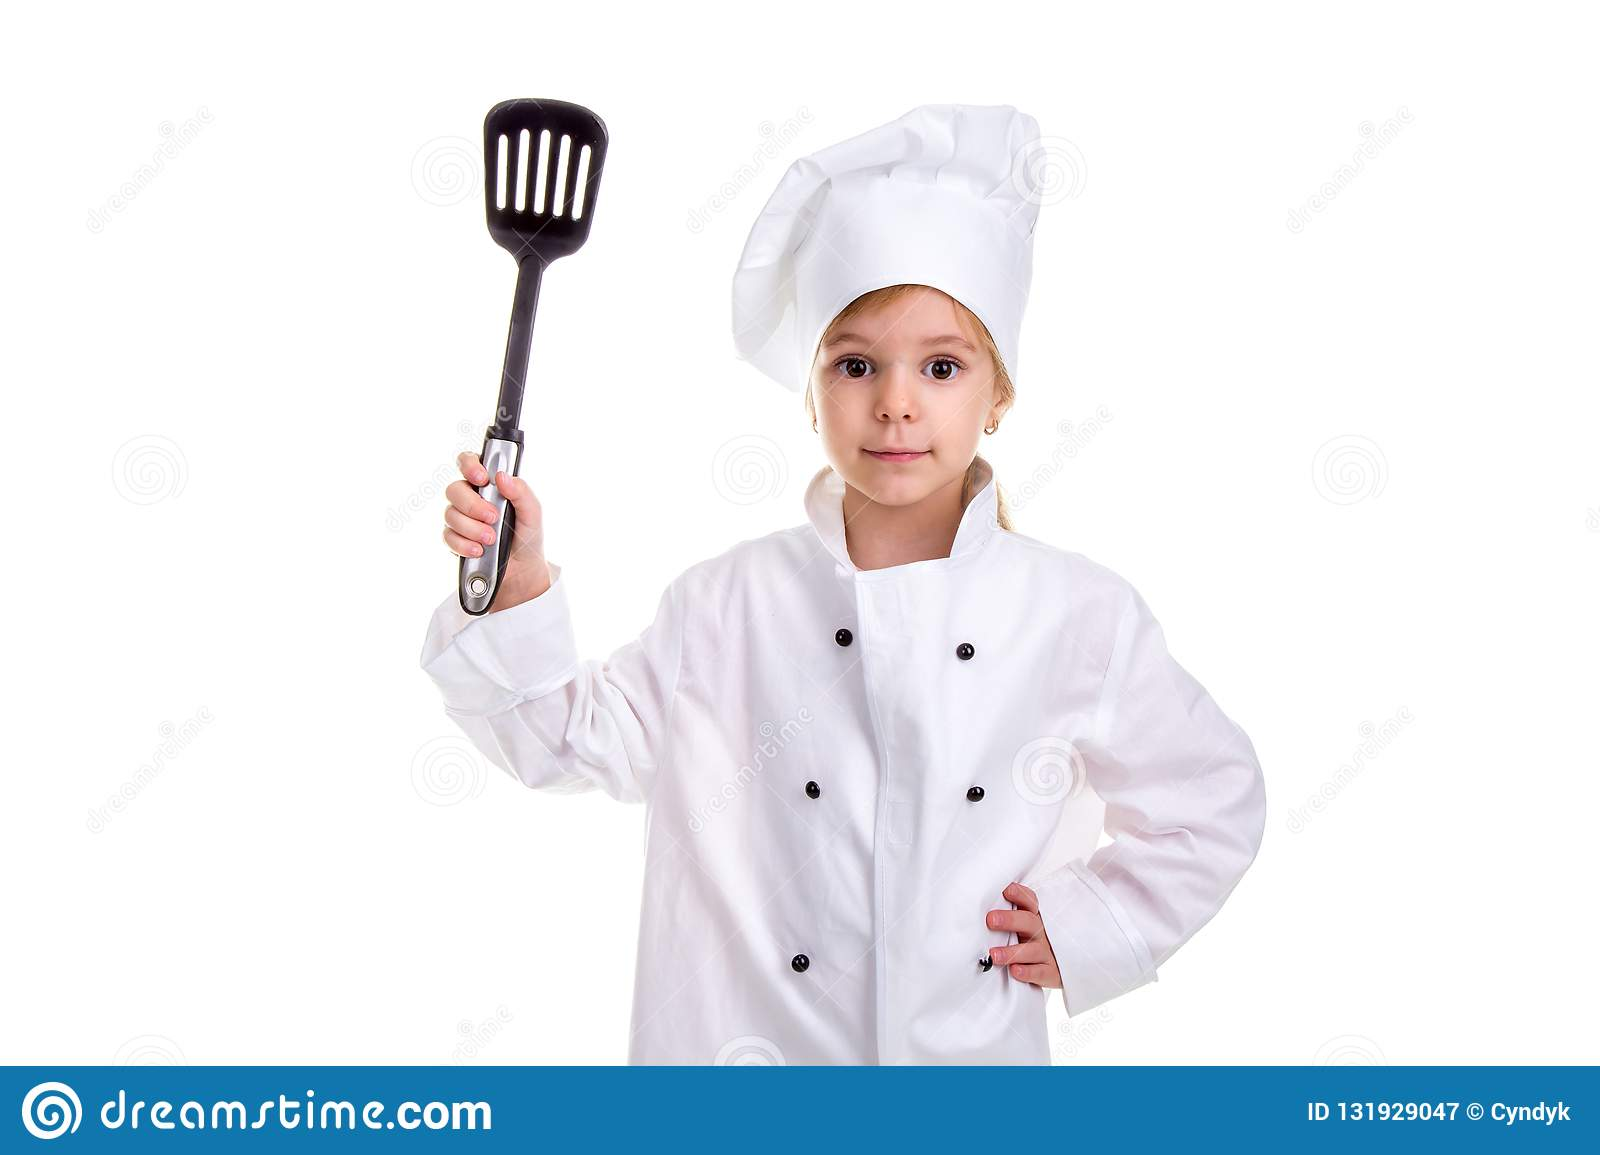 Girl chef white uniform isolated on white background. Holding black scapula up with another hand on the waist. Looking